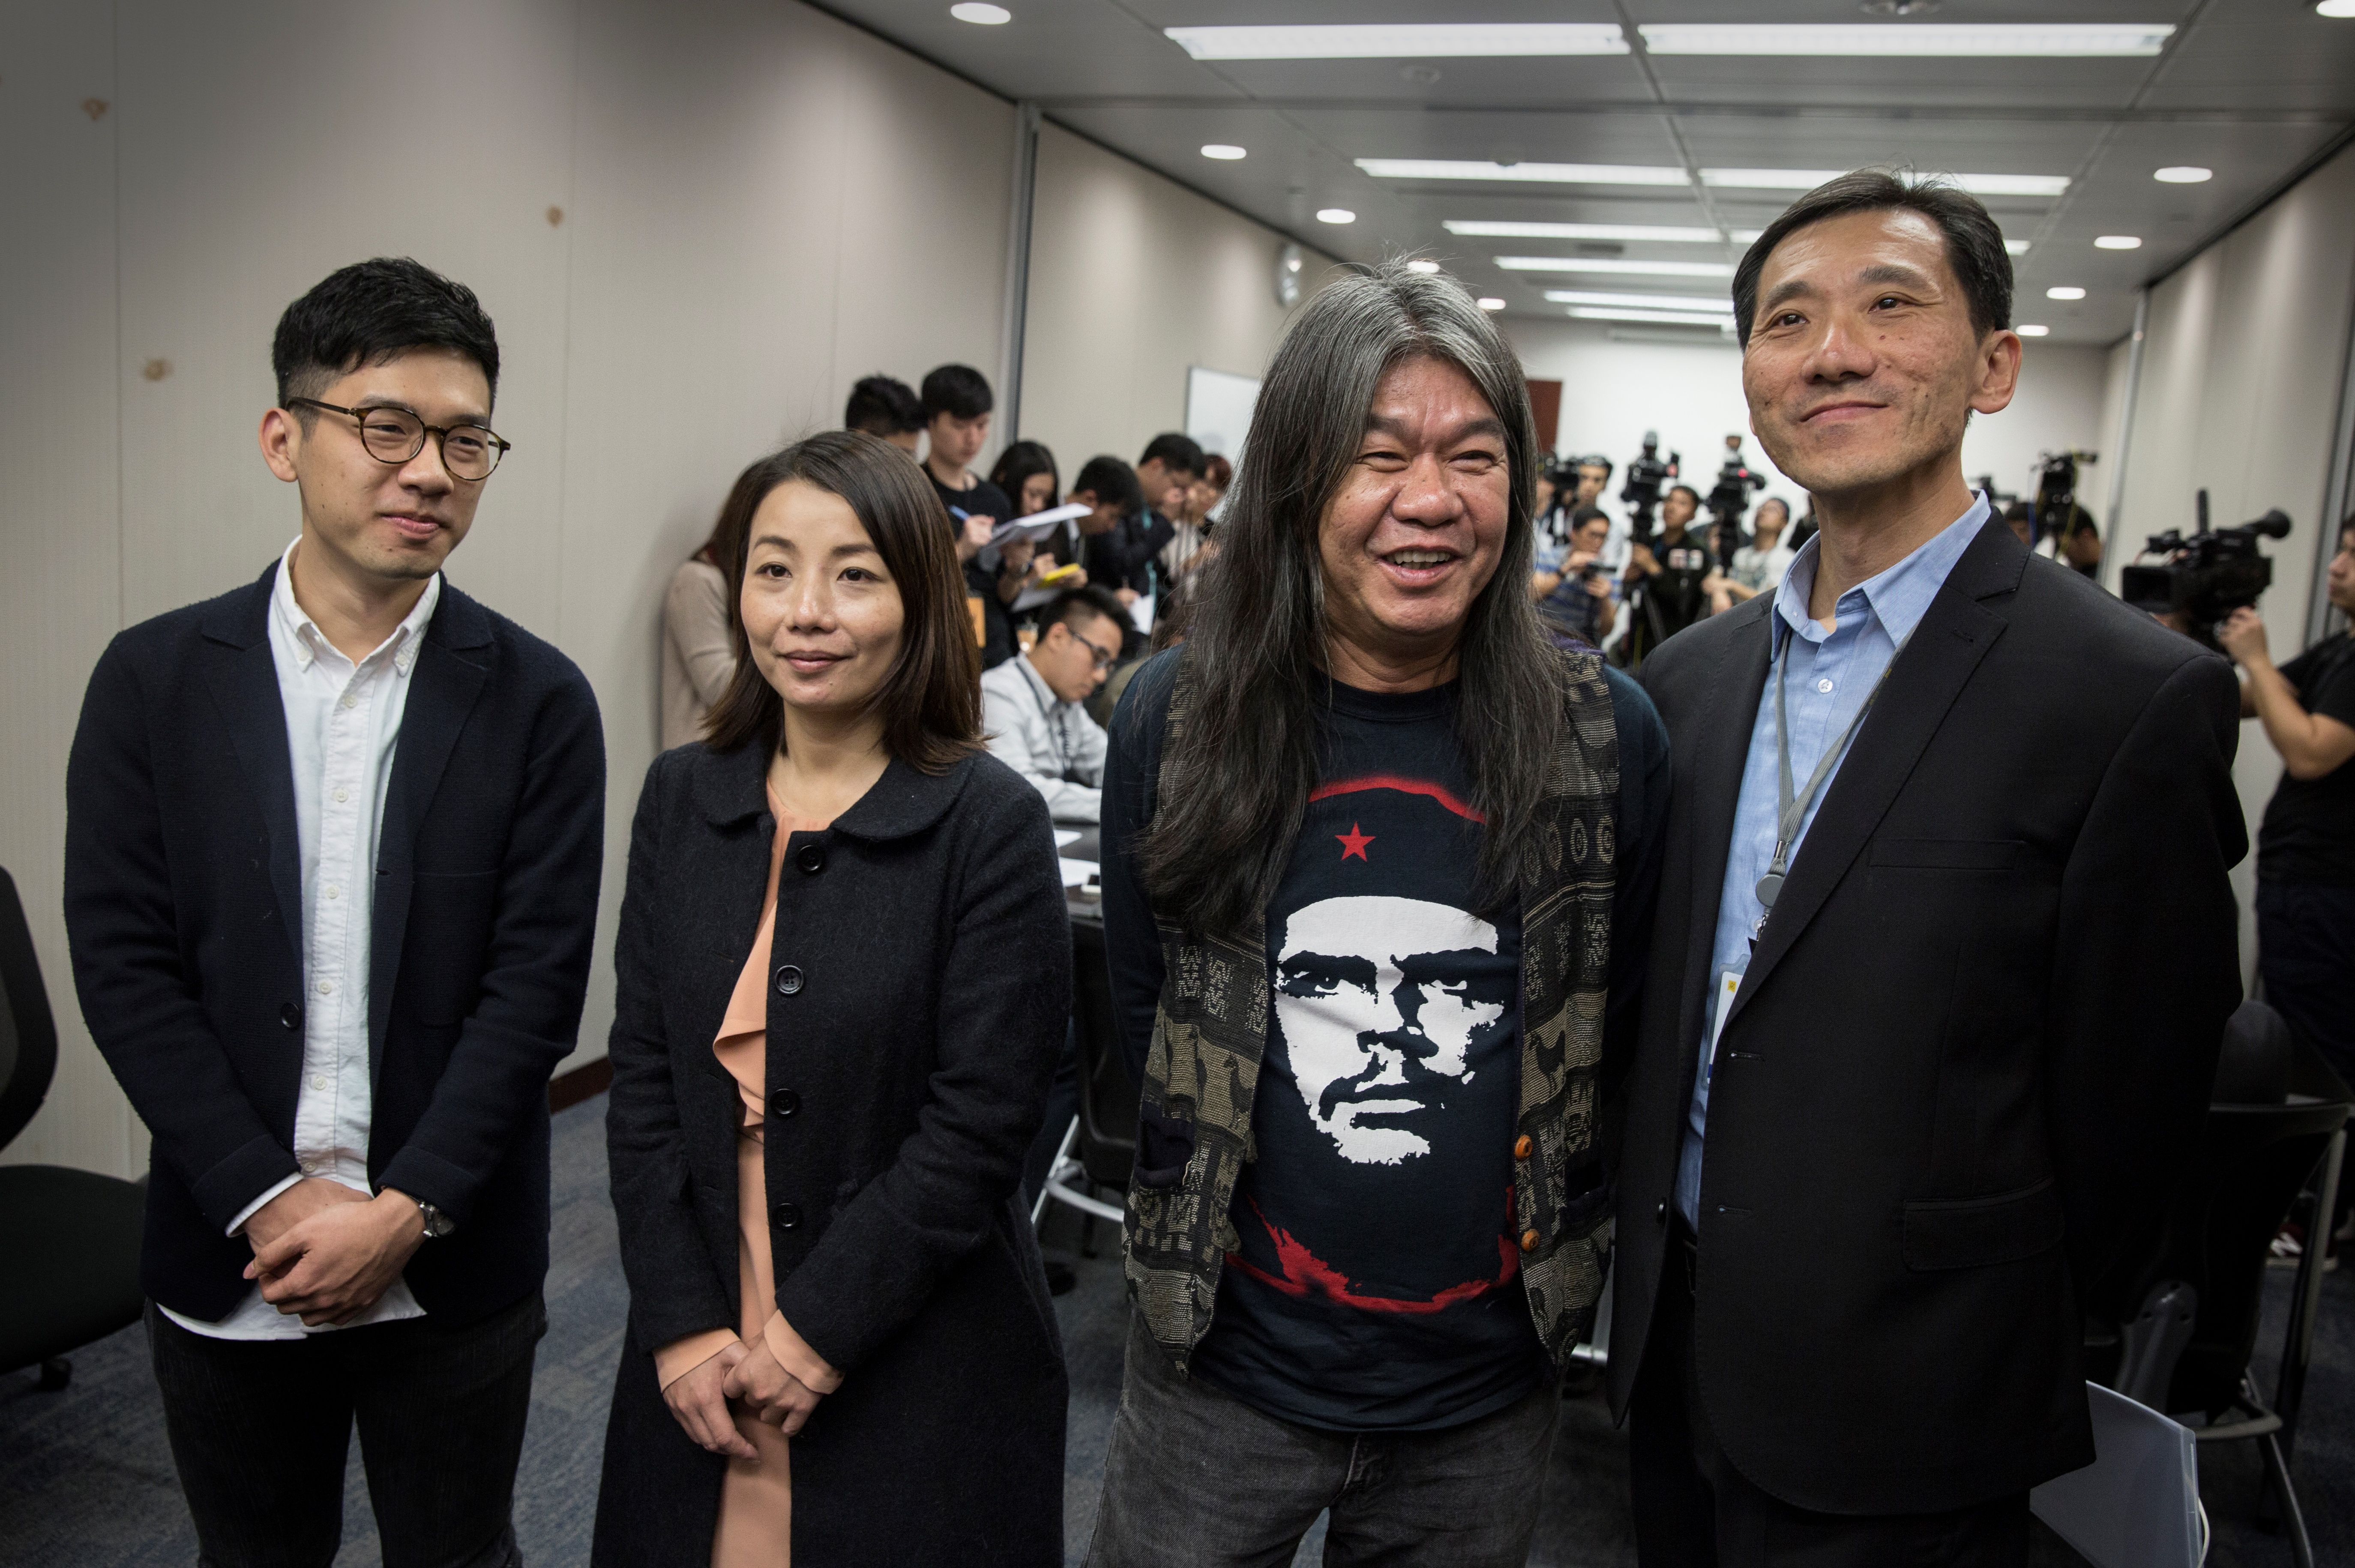 This Dec. 22, 2016 phoyo shows Hong Kong Legislative Council members Nathan Law (L), Lau Siu-lai (2nd L), Leung Kwok-hung (2nd R) and Edward Yiu (R) at a press conference addressing the judicial review brought by the government over each of their oath-taking.